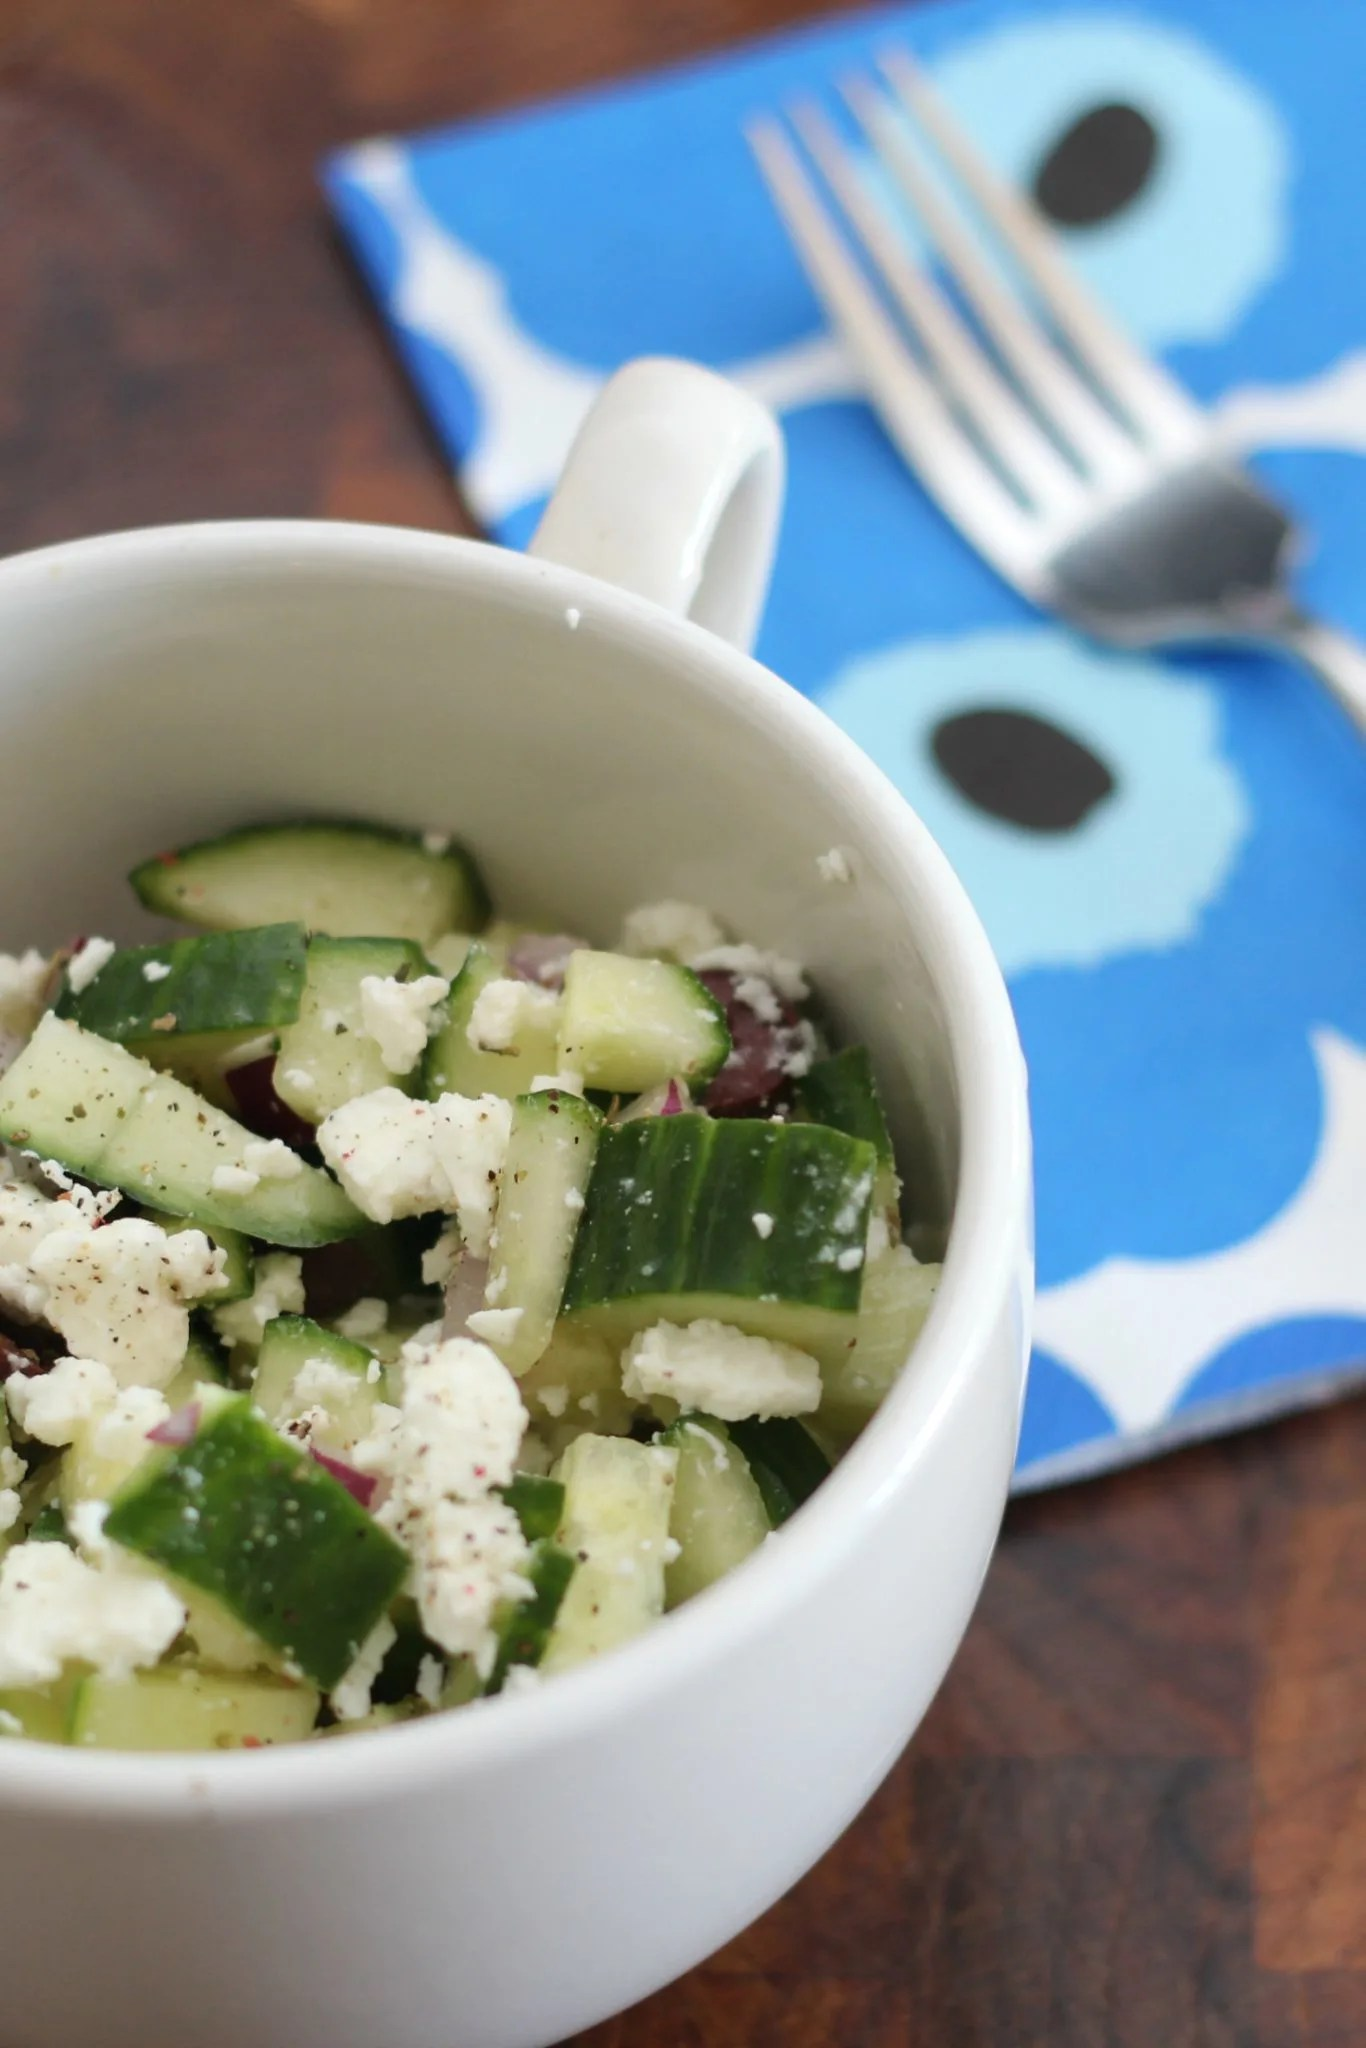 Cucumber, olive and feta salad, low in carbs, high in flavor